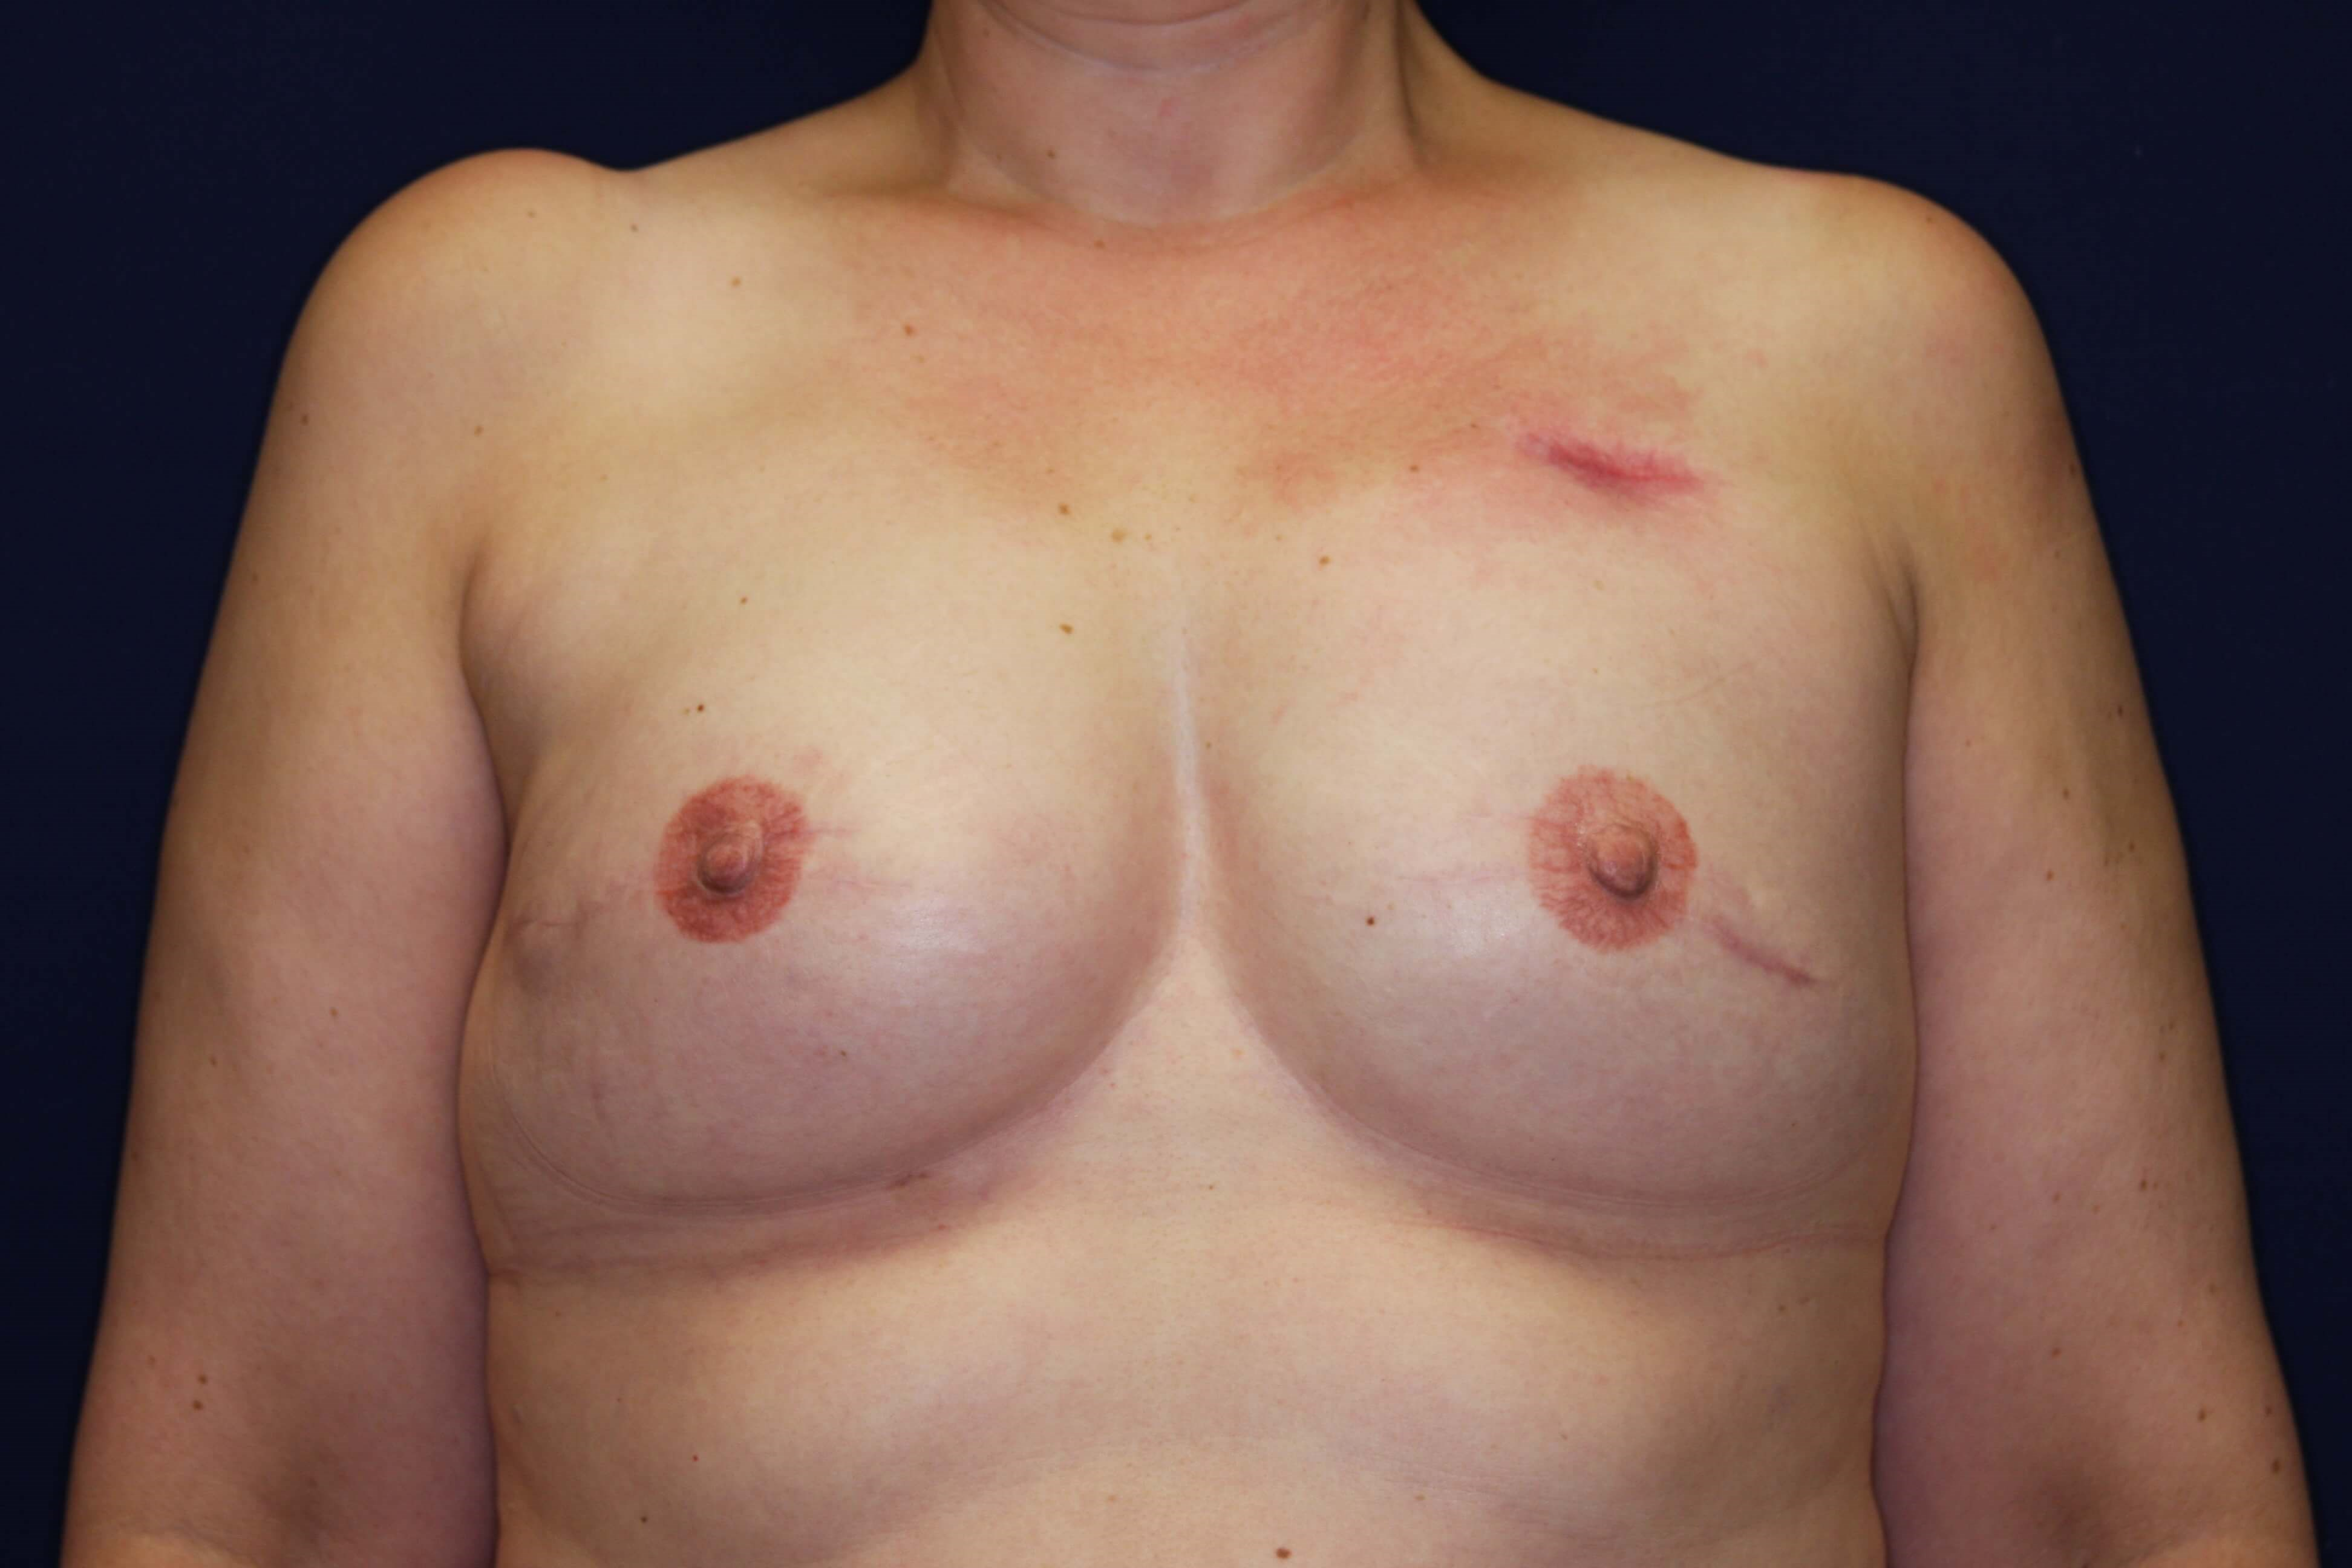 Expander Breast Reconstruction 3 months